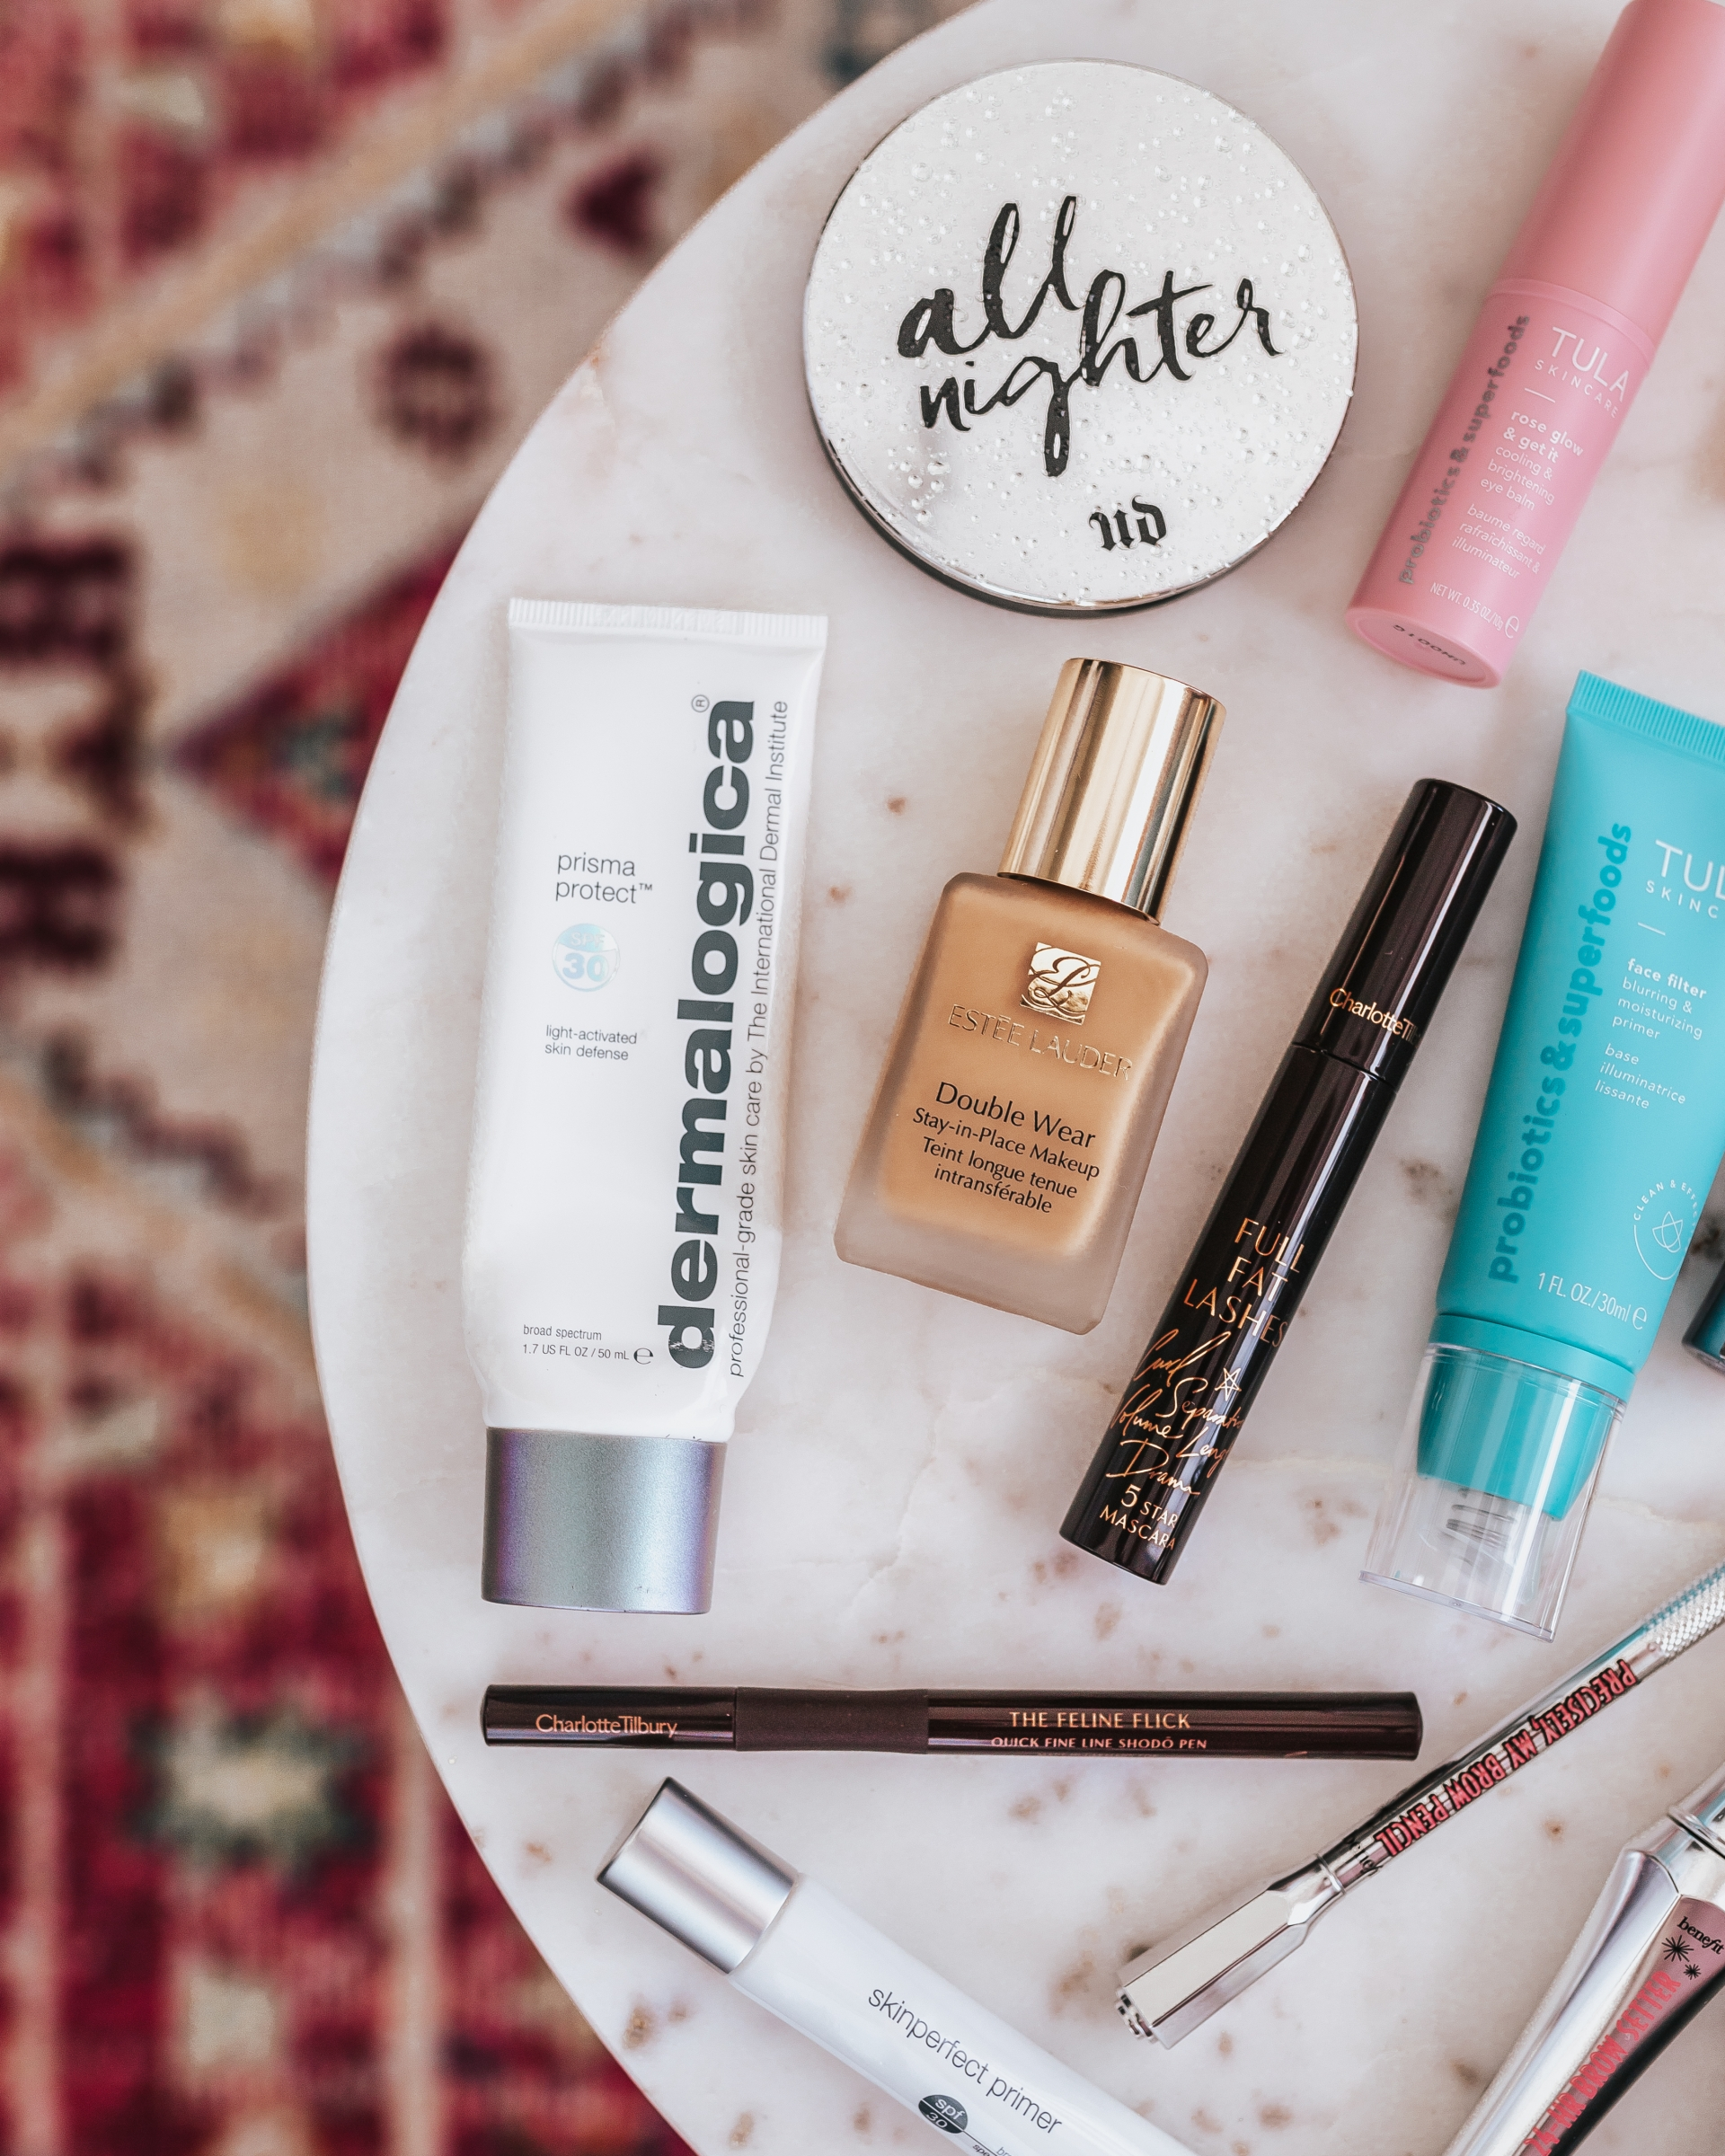 Summer Beauty Favorites from Nordstrom Charlotte Tilbury TULA Dermalogica Urban Decay Benefit Estee Lauder Step by Step Easy Summer Beauty Routine Makeup Routine Nordstrom Beauty Nordstrom Sale Nsale Nordstrom Anniversary Sale